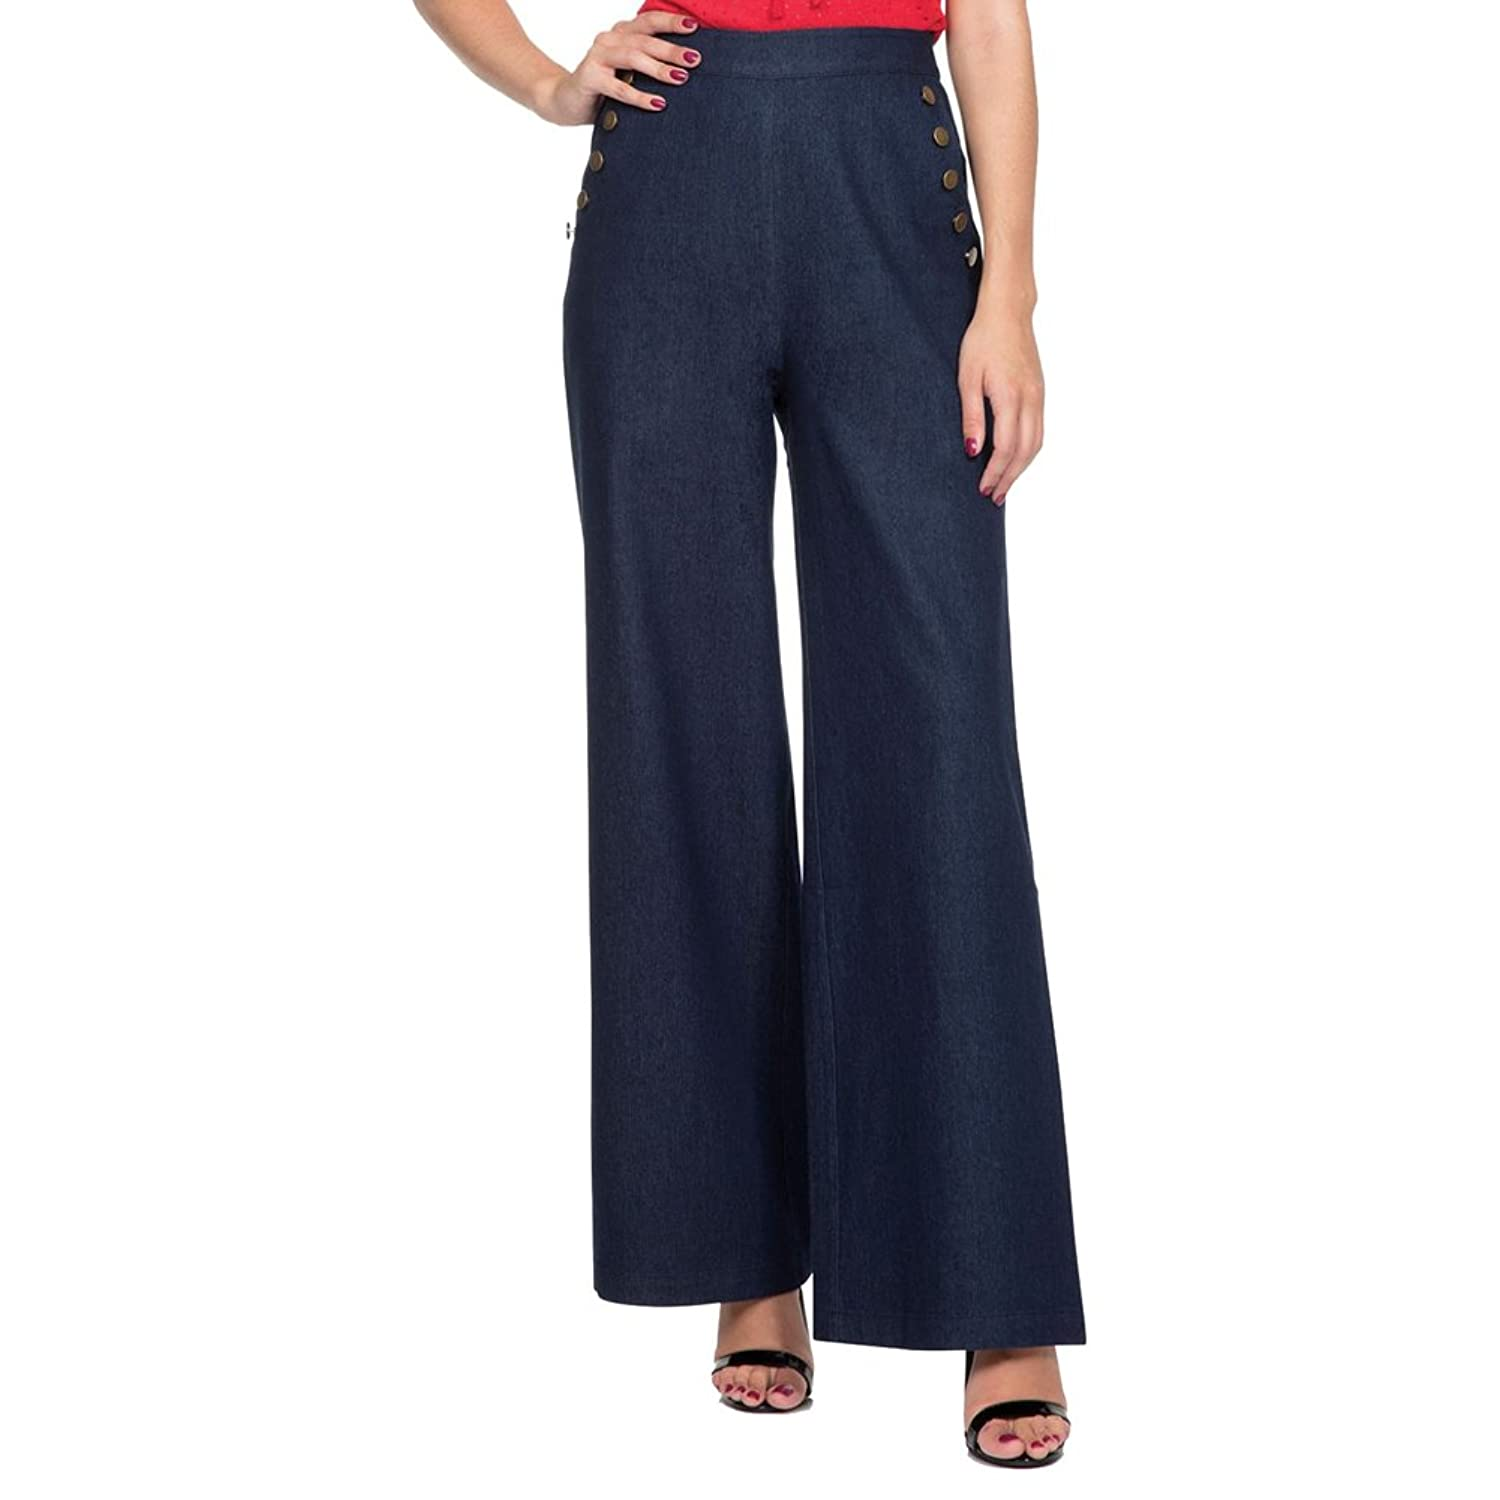 1940s Style Pants & Overalls- Wide Leg, High Waist Womens Voodoo Vixen SAMANTHA Nautical Denim Trousers Blue $52.99 AT vintagedancer.com